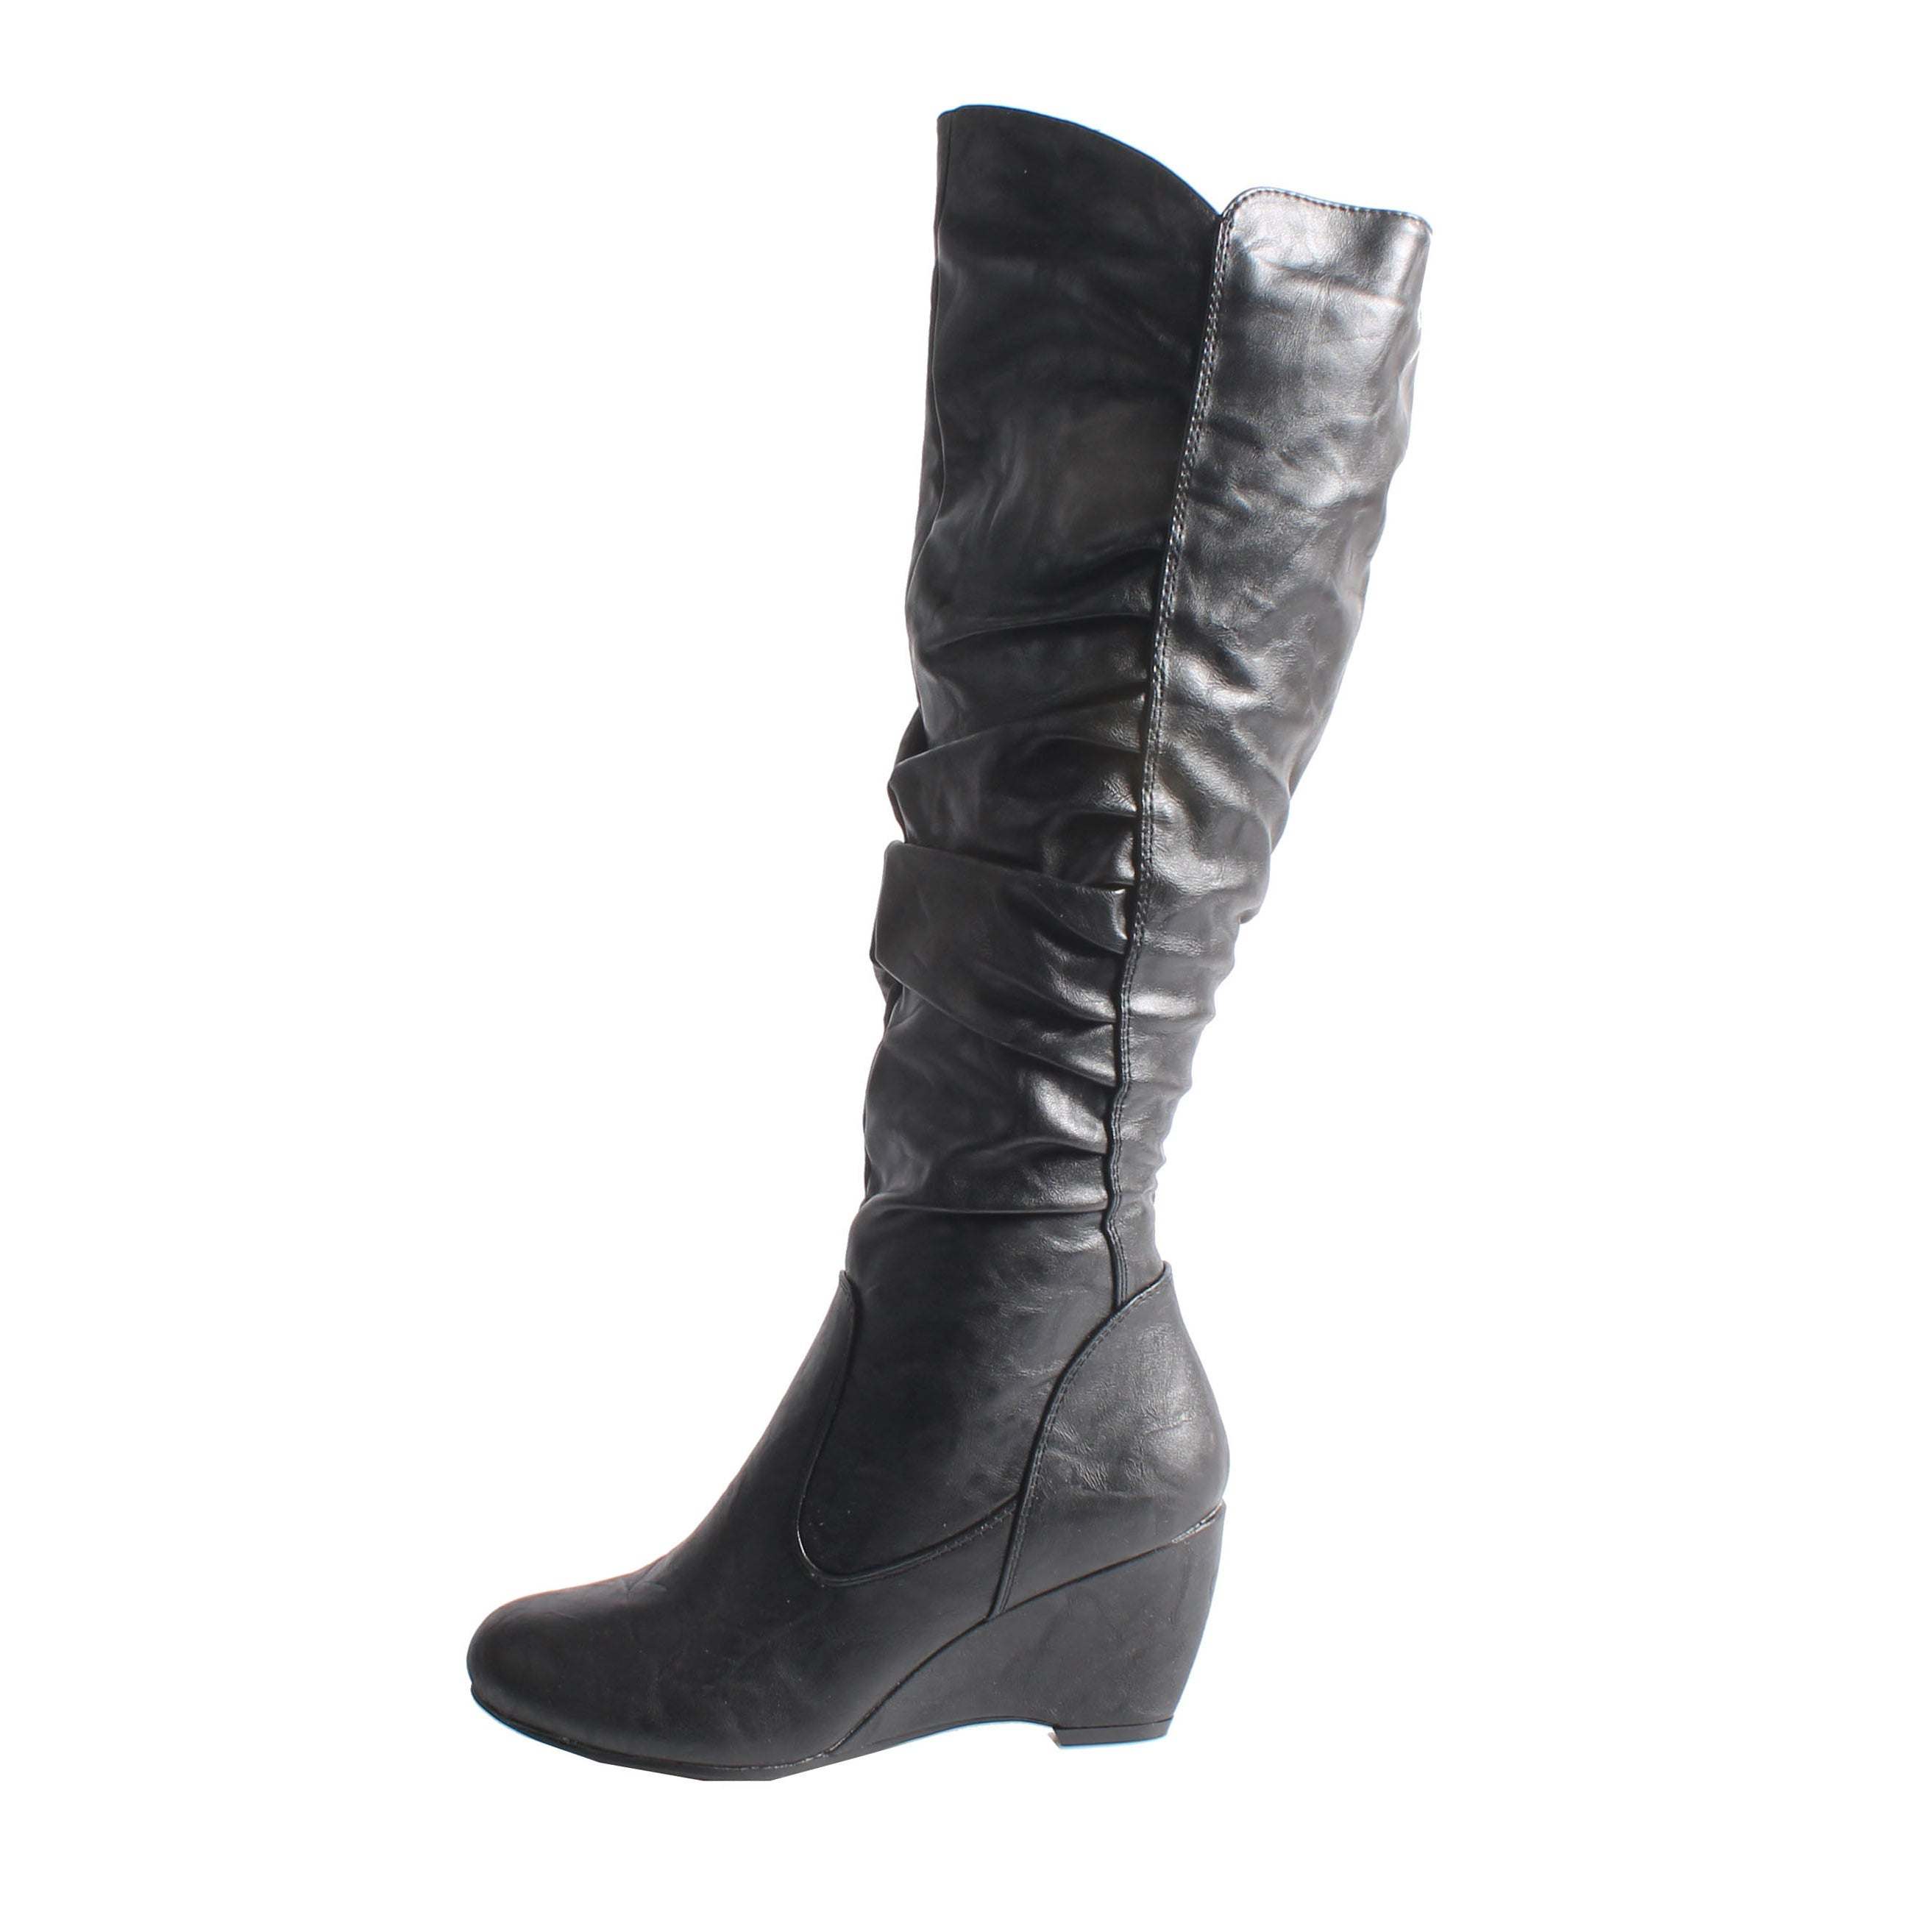 35759fda62f Shop Blossom by Beston Women s  Della-8  Knee-High Black Wedge Boots - Free  Shipping On Orders Over  45 - Overstock - 7278390